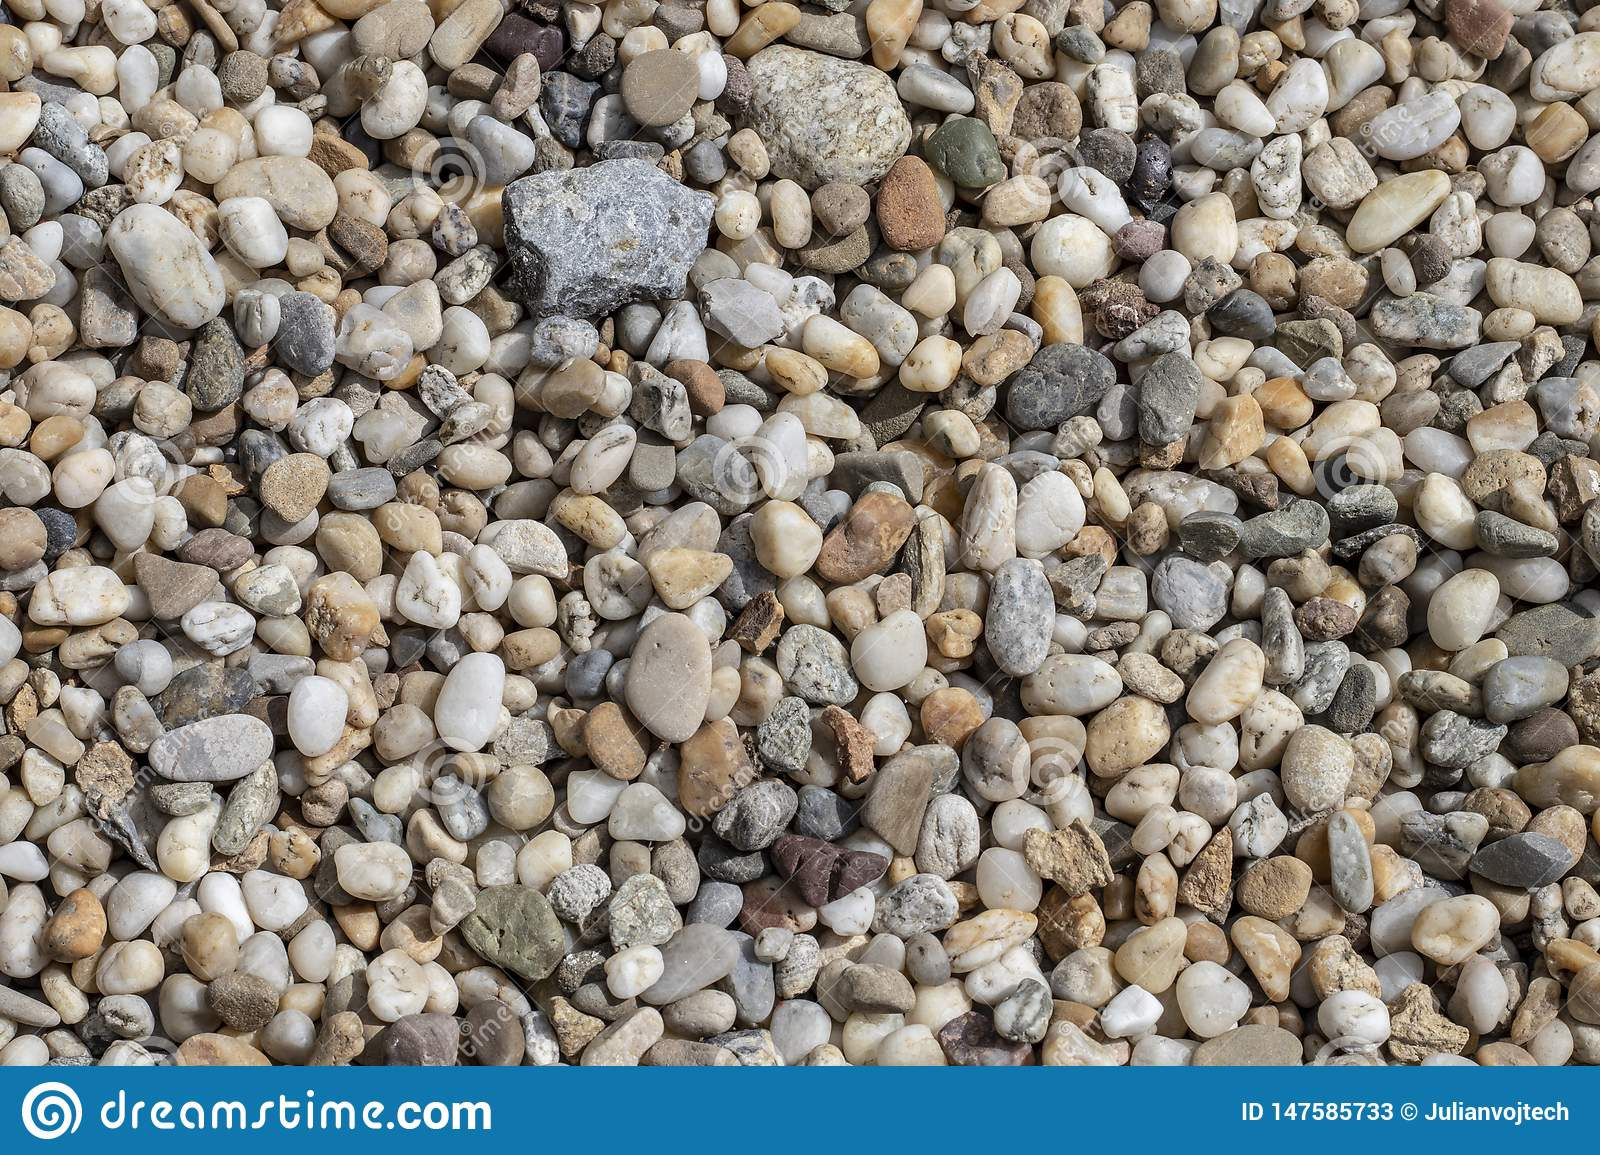 Gravel texture. Small stones, little rocks, pebbles in many shades of grey, white, brown, green and blue.